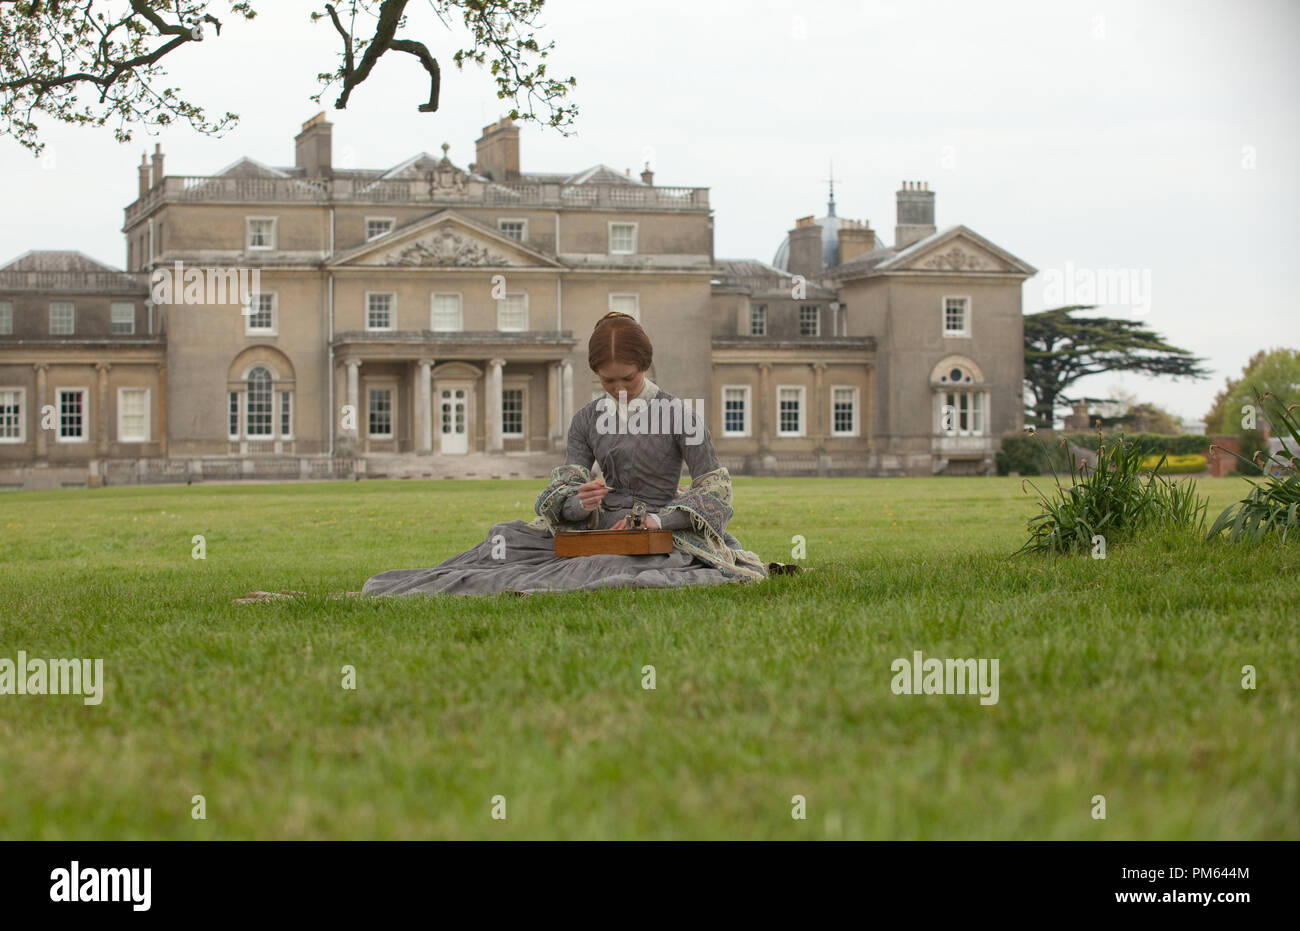 Mia Wasikowska stars as the title character of the romantic drama JANE EYRE, a Focus Features release - Stock Image